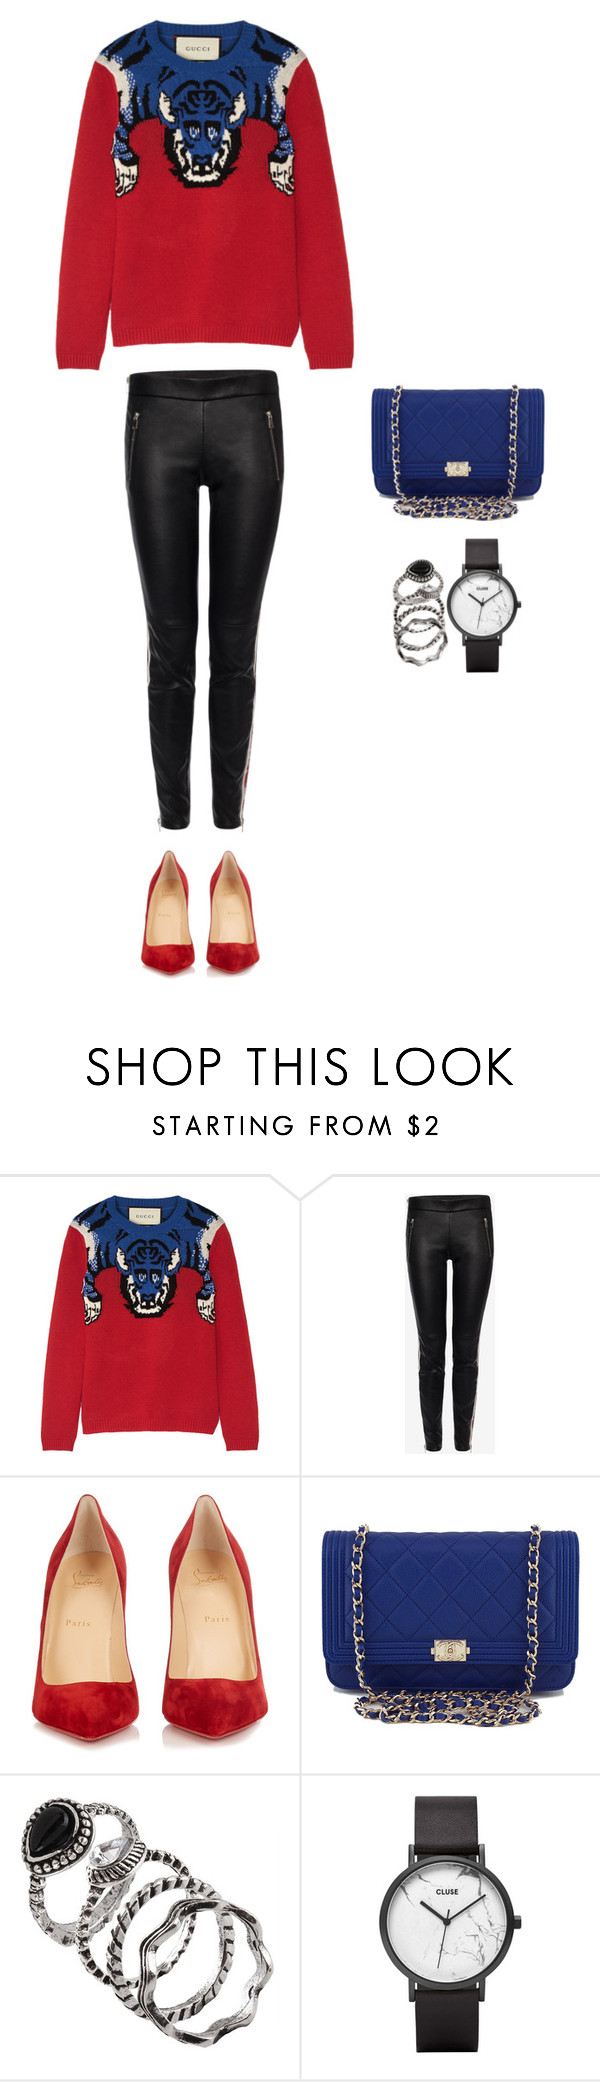 """Style #150"" by maksimchuk-vika ❤ liked on Polyvore featuring Gucci, Alexander McQueen, Christian Louboutin, Chanel and CLUSE"